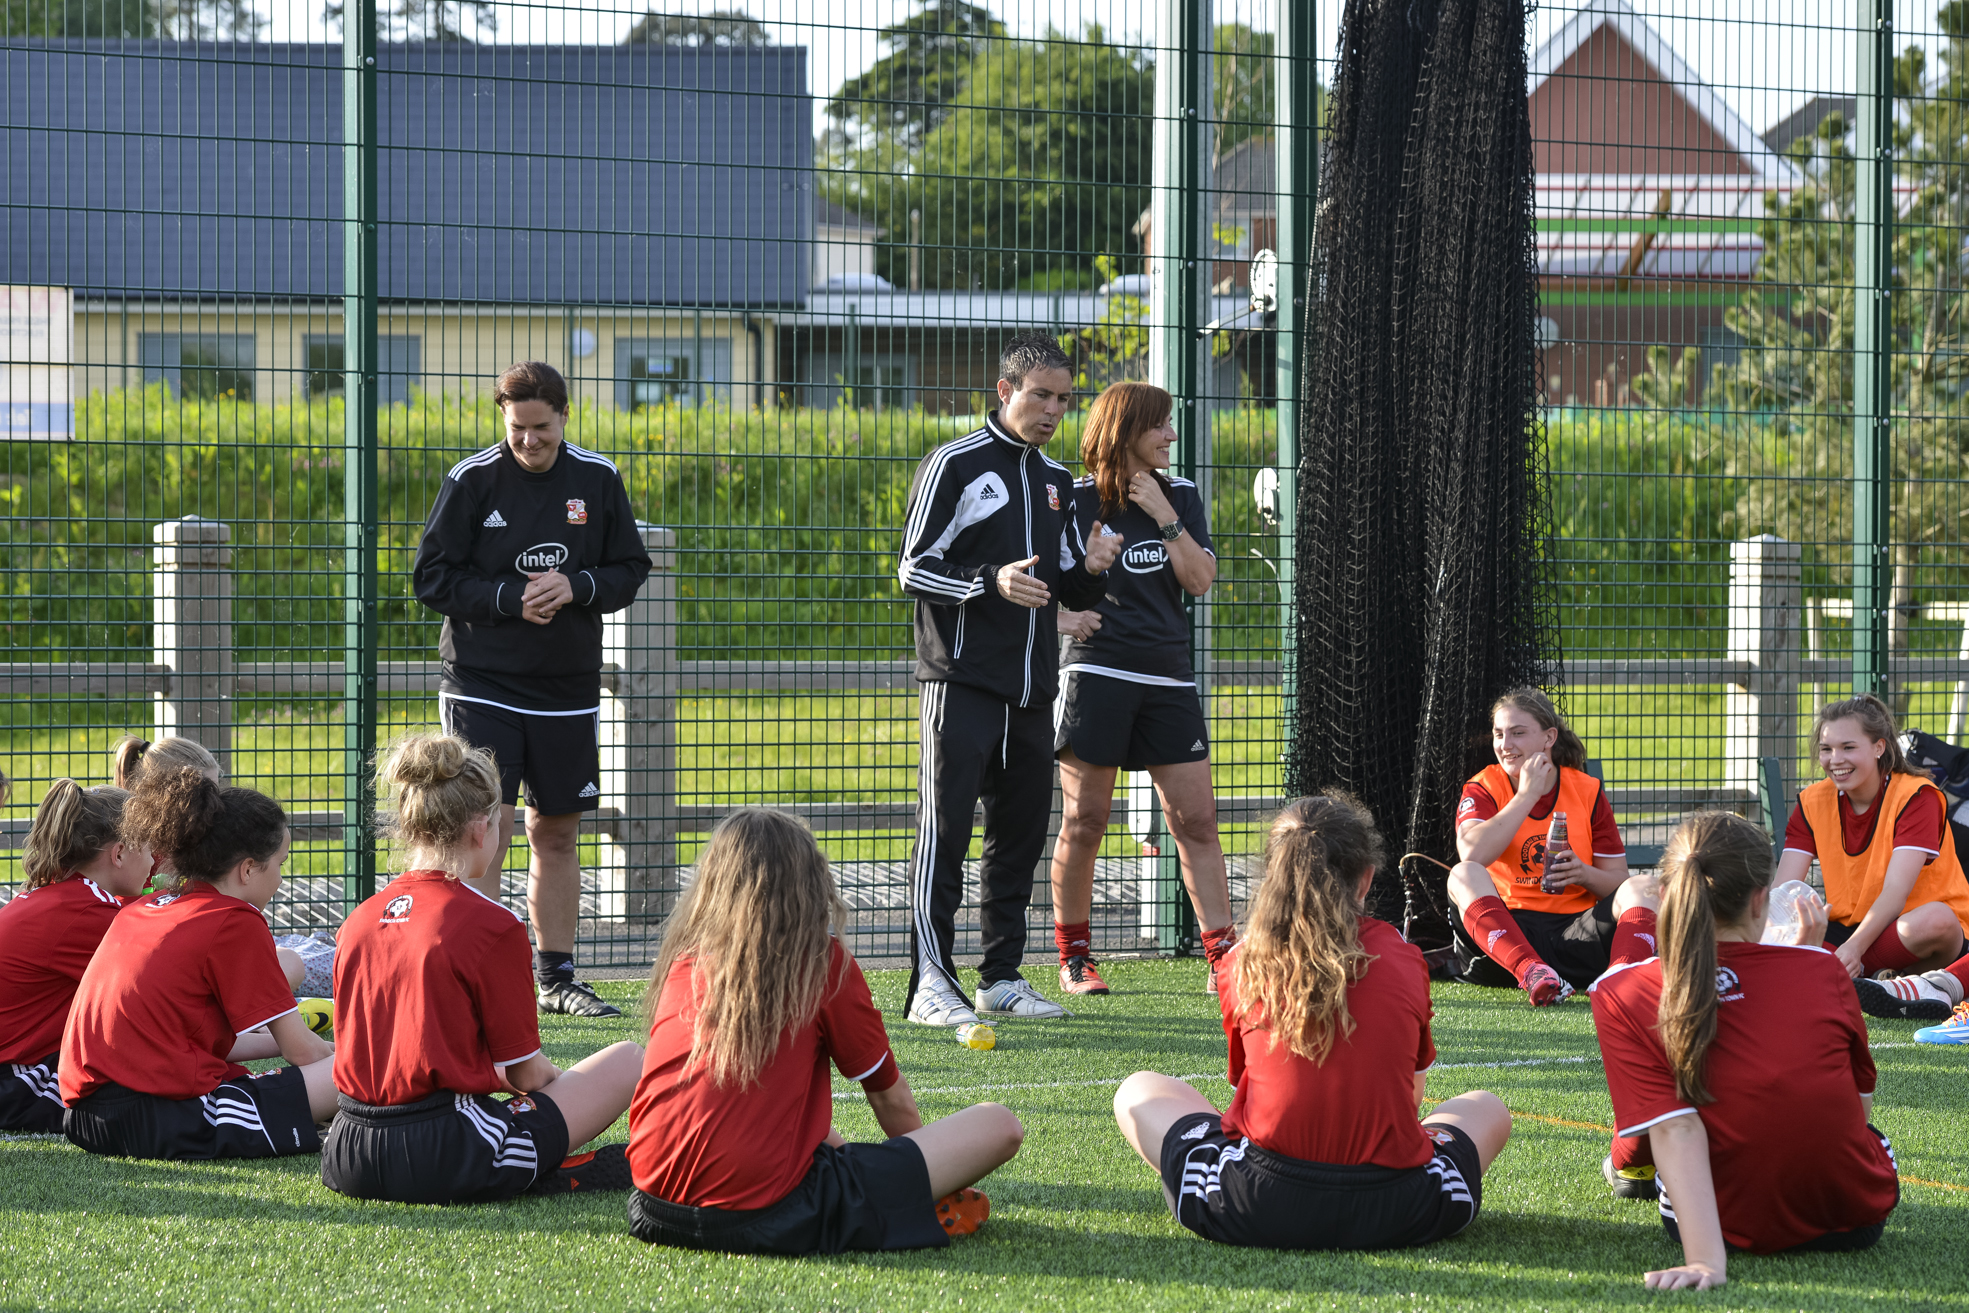 Swindon Town Ladies target the Premier League